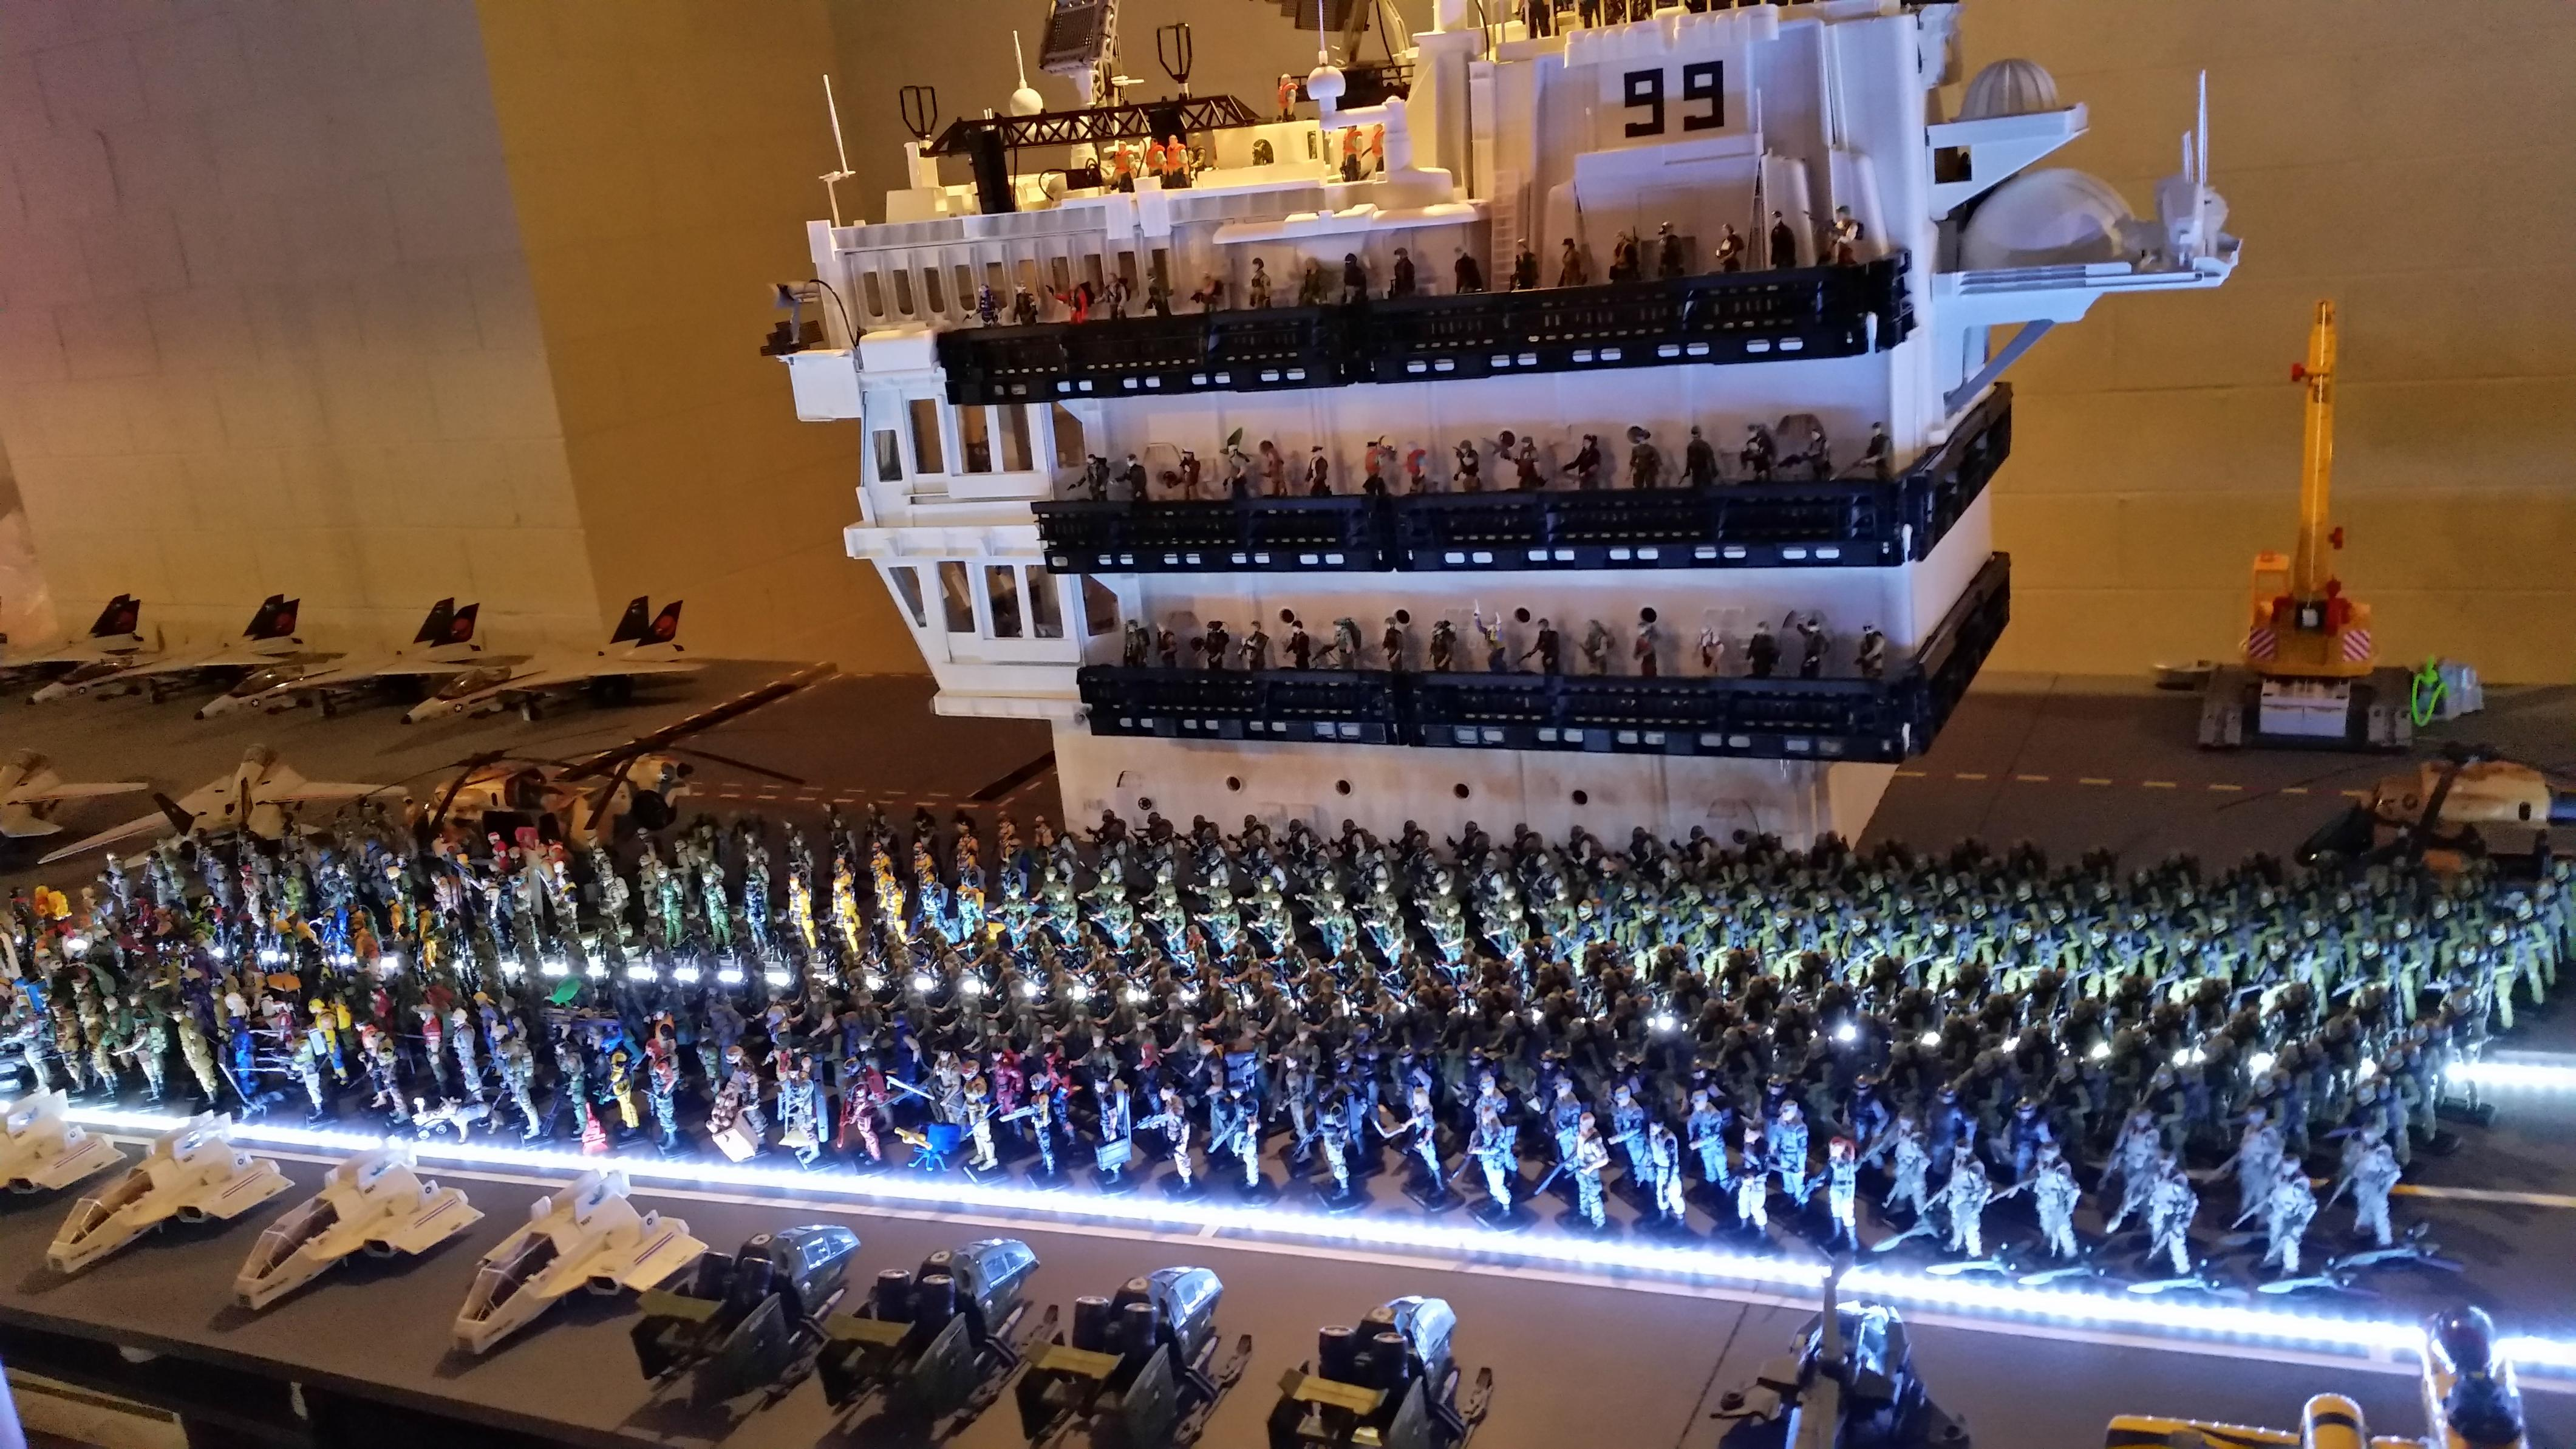 1 4 scale airplane lights with 3 34 Scale Custom Uss Flagg Thing Massive 58958 on Avro 683 Lancaster Mk X in addition The Atomic Bomb Wwii moreover 14556 Man Wildcat in addition 3 34 Scale Custom Uss Flagg Thing Massive 58958 furthermore A 53 Acre Estate Rolls Royce 4M Gift Evander Holyfield Plea Worshipers New Gulfstream Inside World Mega Rich Preacher Faced JAIL Financial Secrecy.